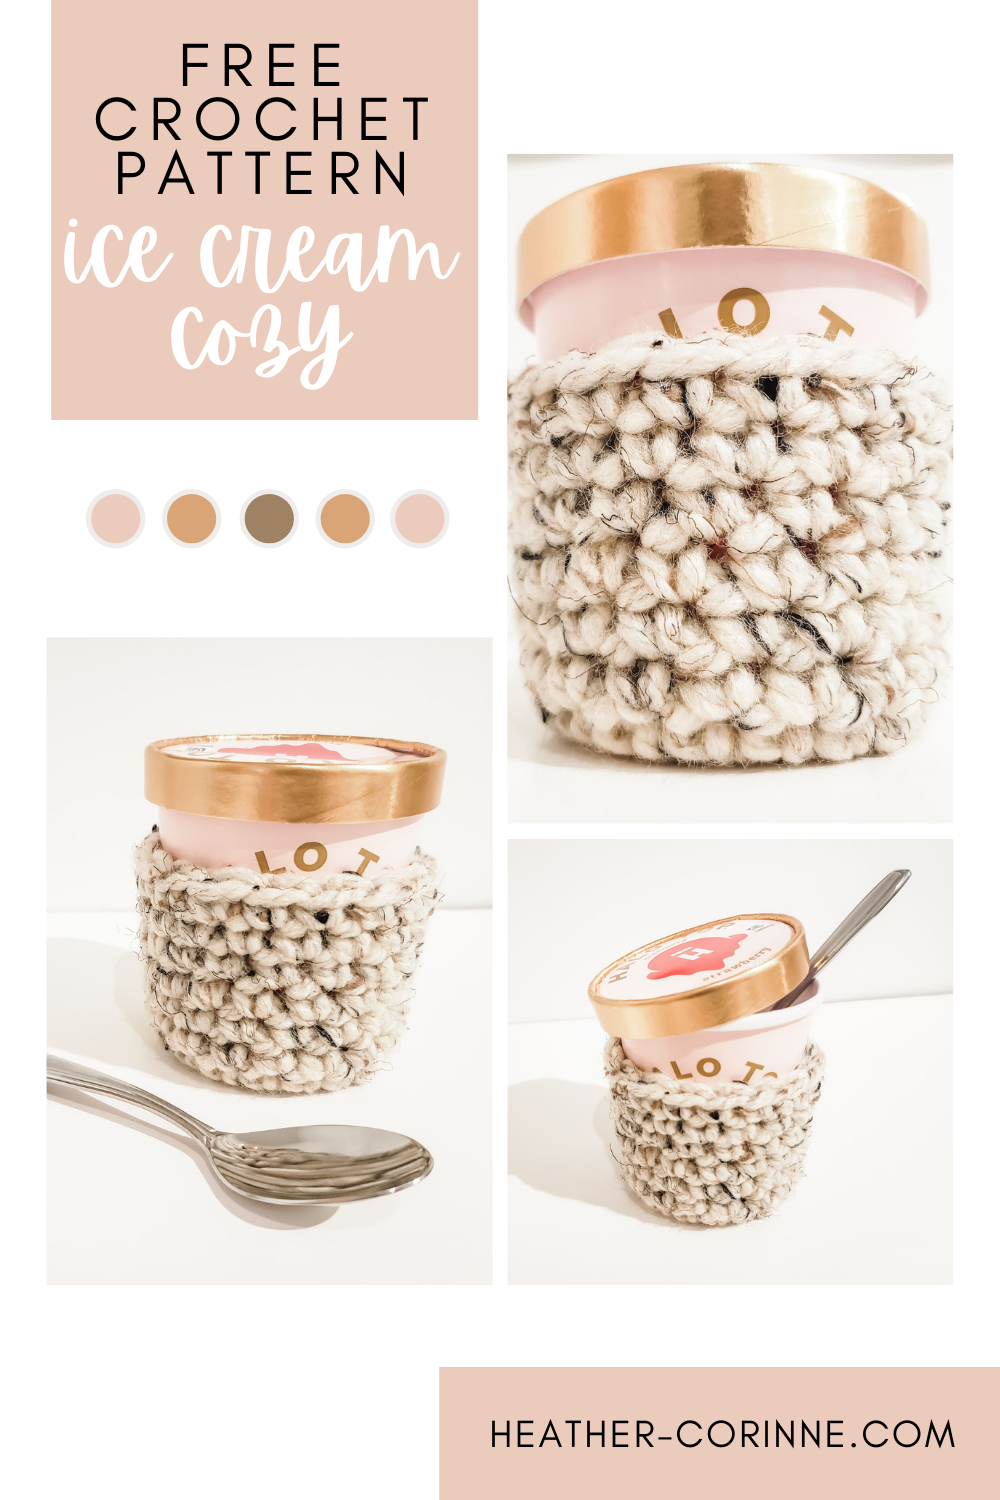 Pin the free pattern for my crochet ice cream cozy to your pinterest board.